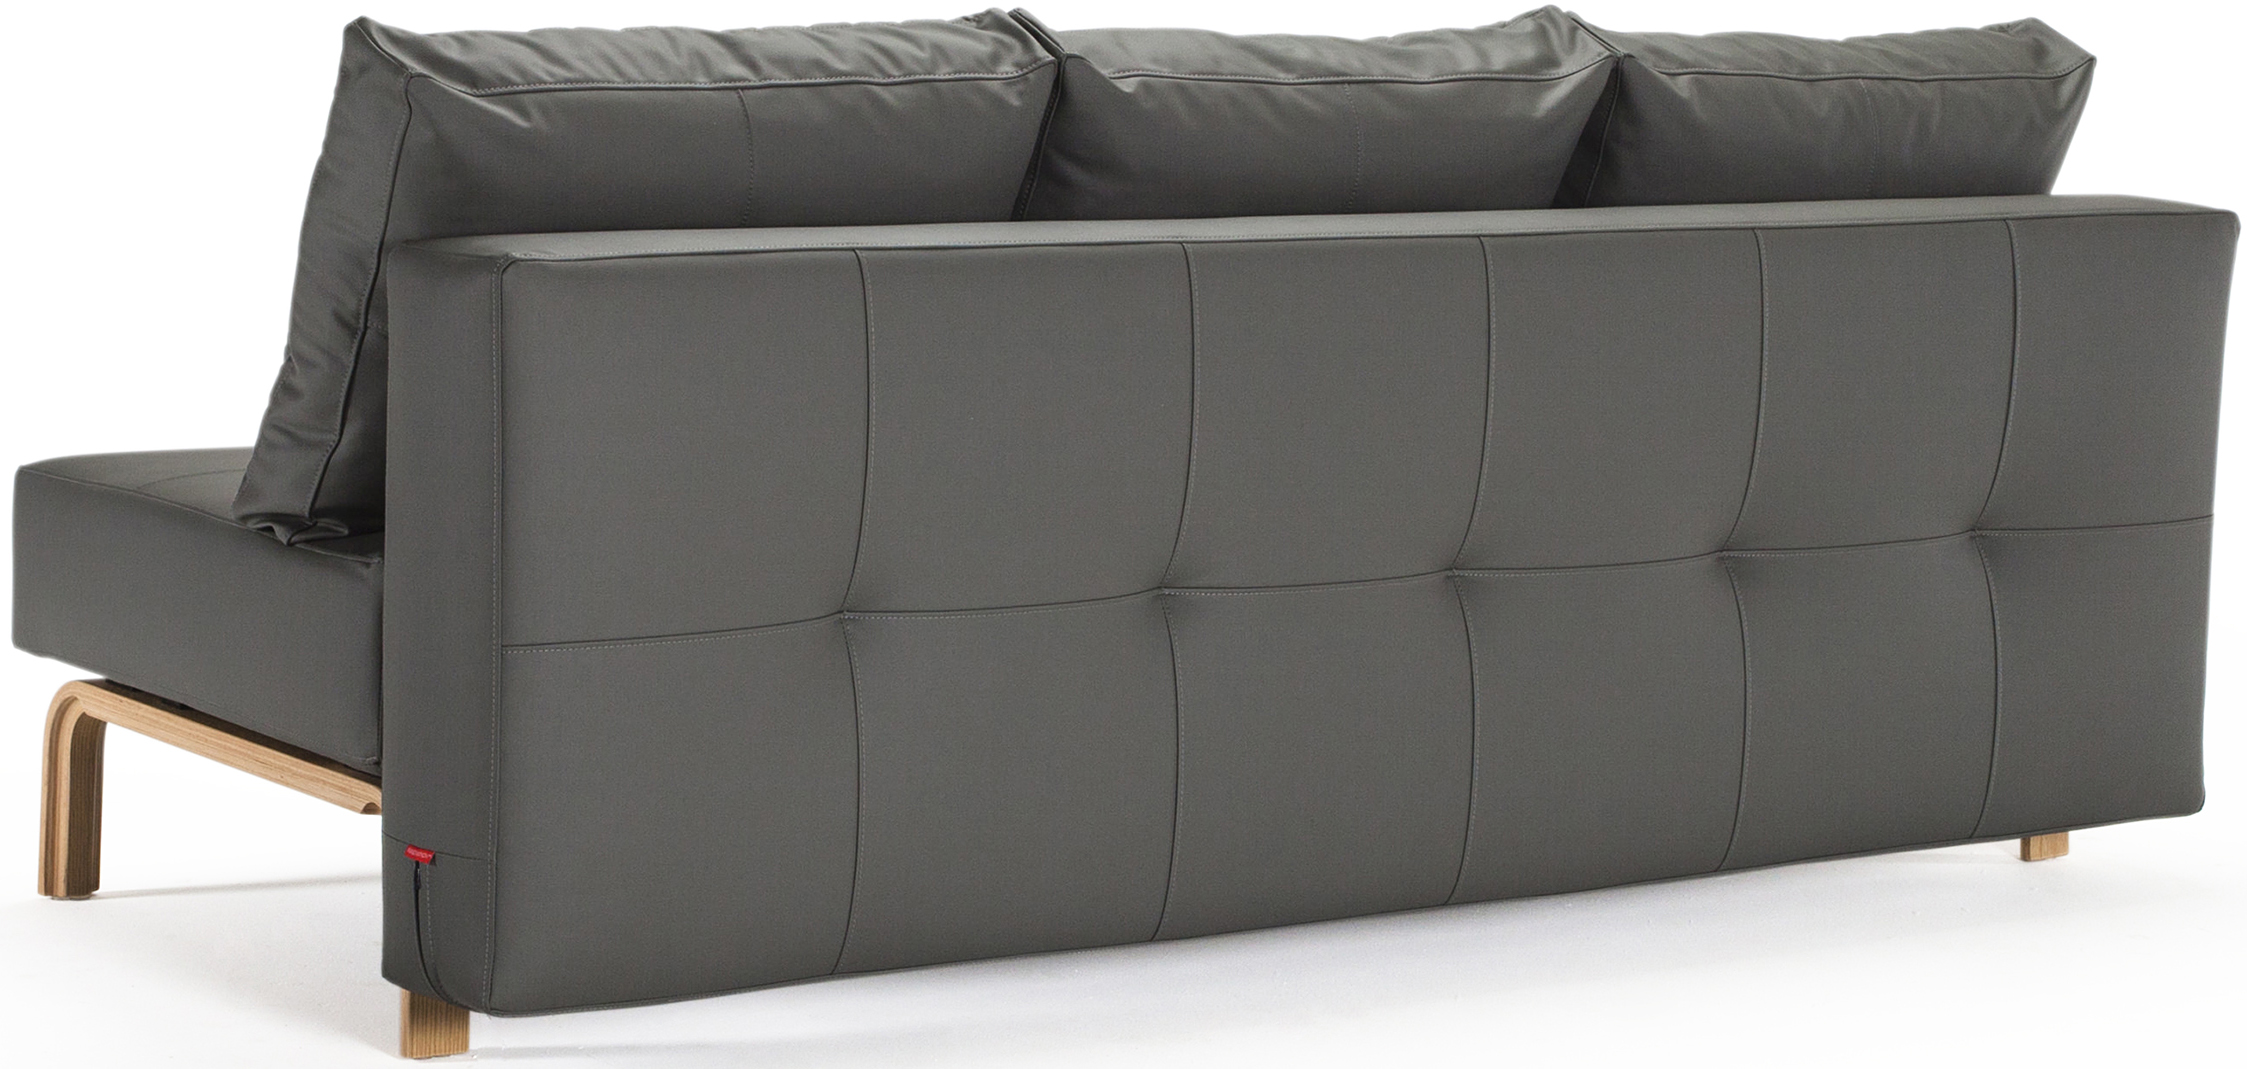 innovation supremax quilt oak sofa